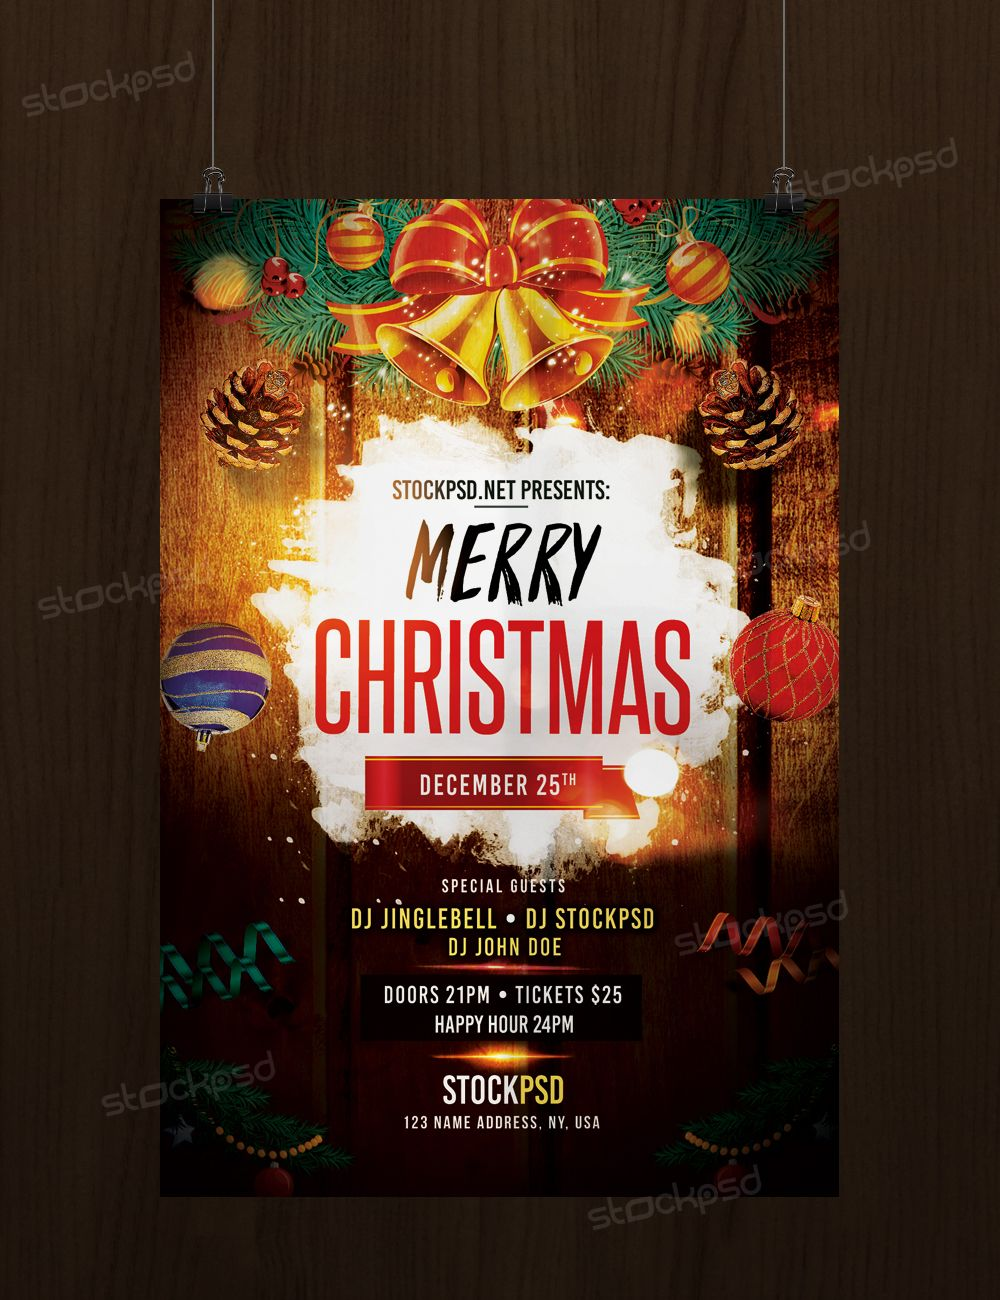 Merry Christmas  Free Psd Flyer Template  Psd Flyers